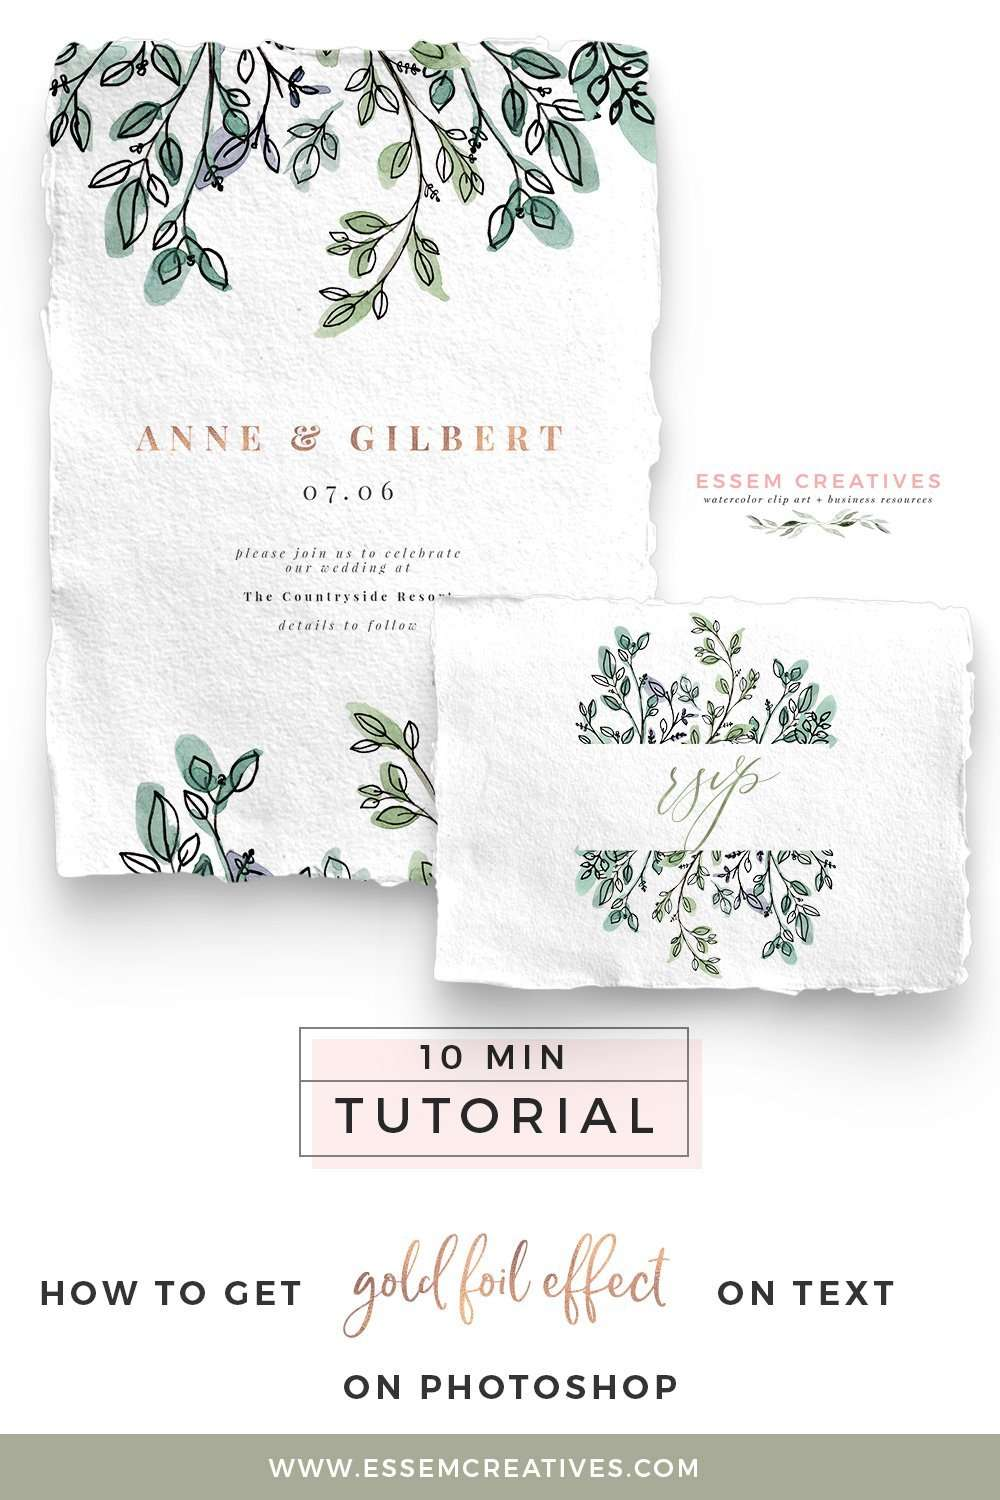 How to Get Rose Gold Foil or Watercolor Effect on Text on